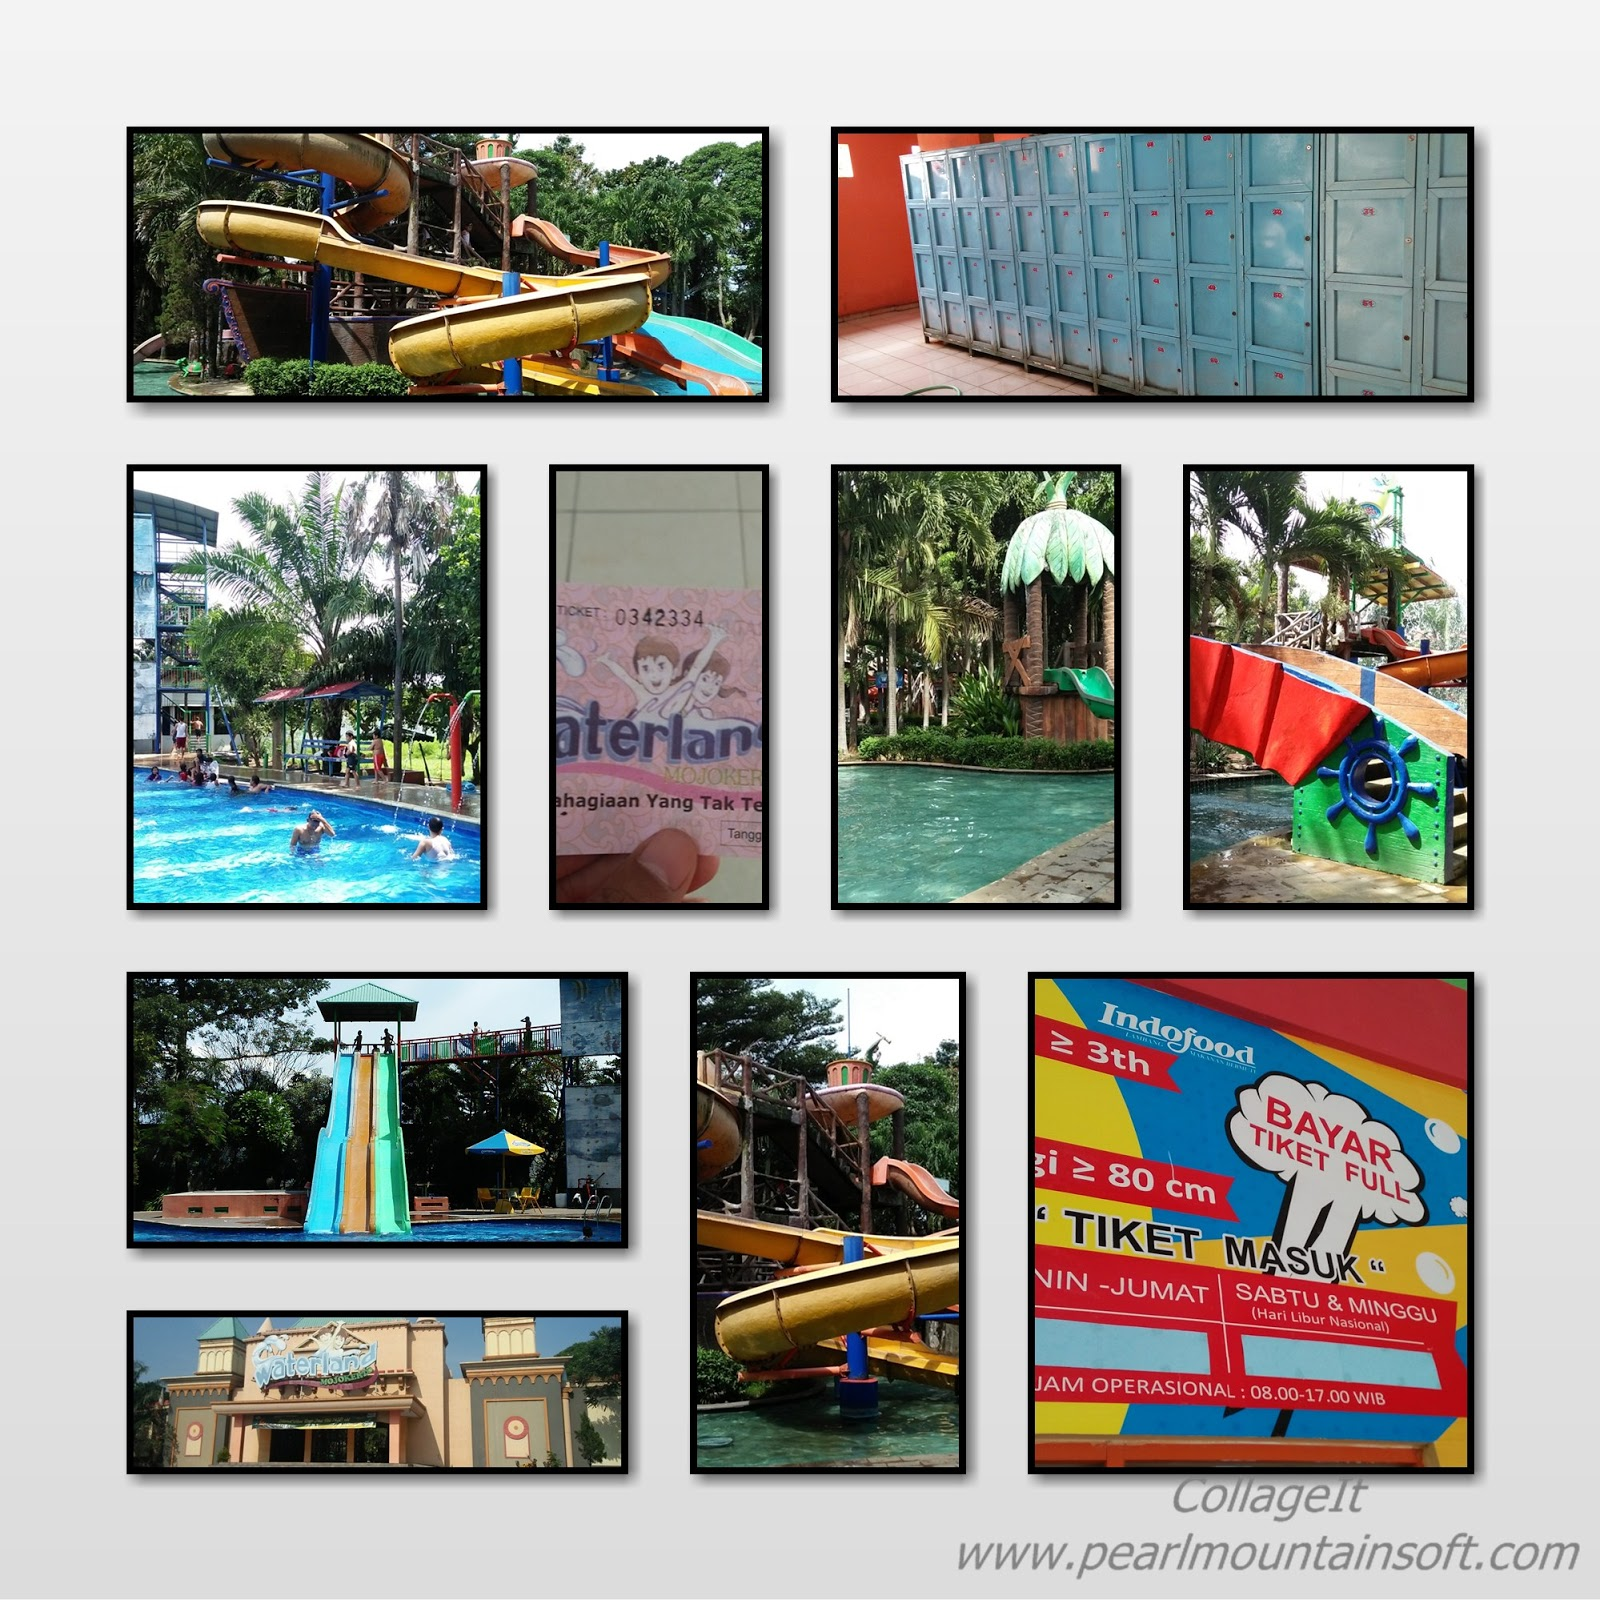 Ayo Main Air Dan Berenang Di Waterland Mojokerto Catatan